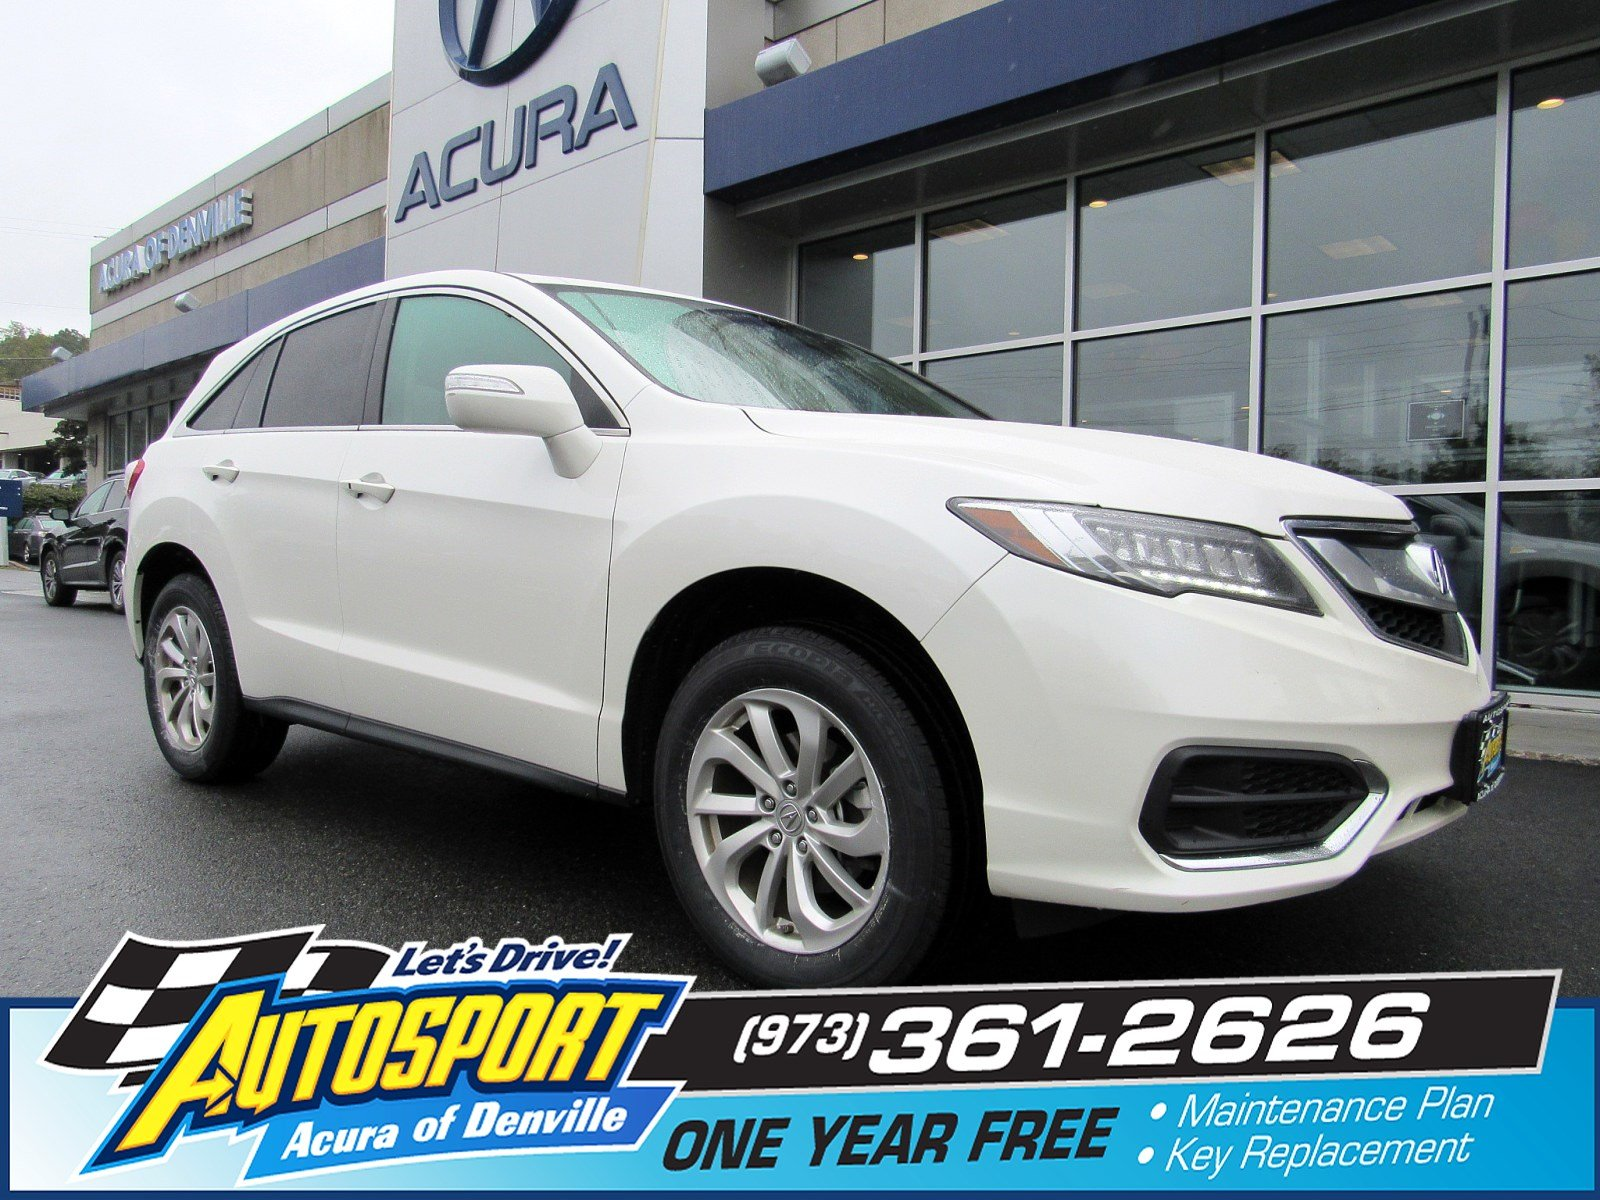 Certified Pre Owned 2016 Acura RDX AWD Sport Utility in Denville